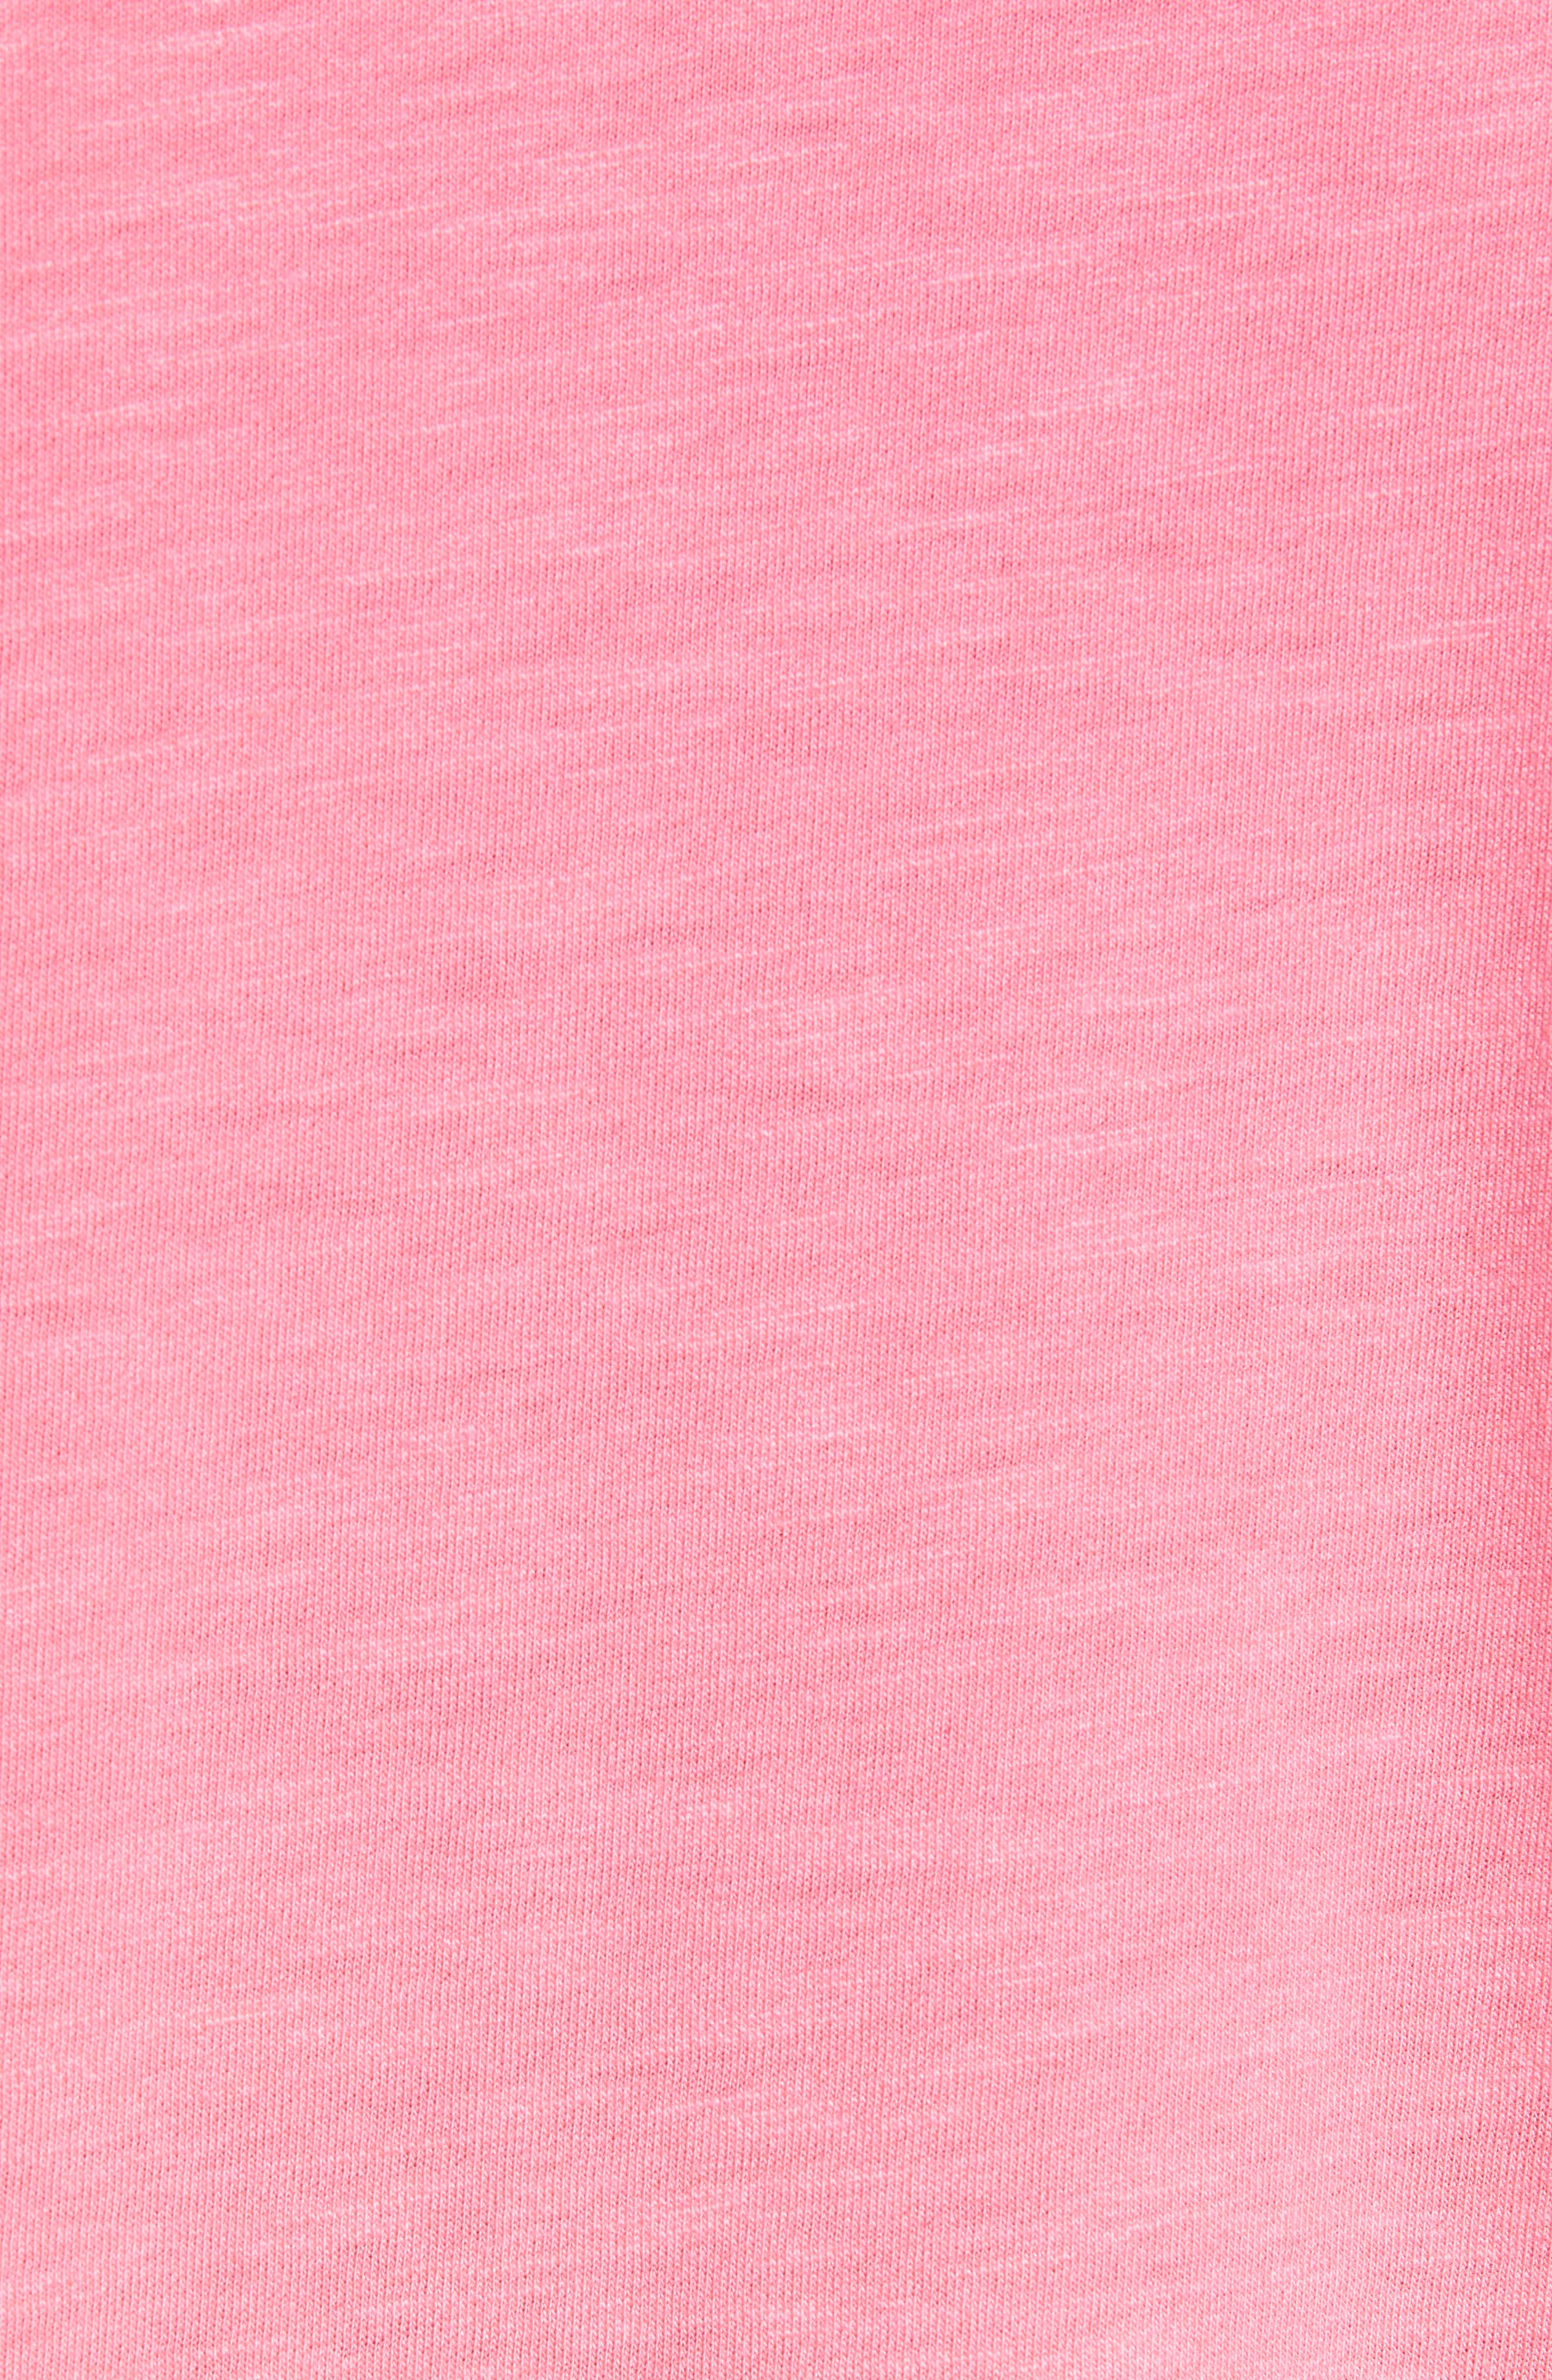 ZACHARY PRELL, Shelter Island Dip Dye Polo, Alternate thumbnail 5, color, BRIGHT PINK